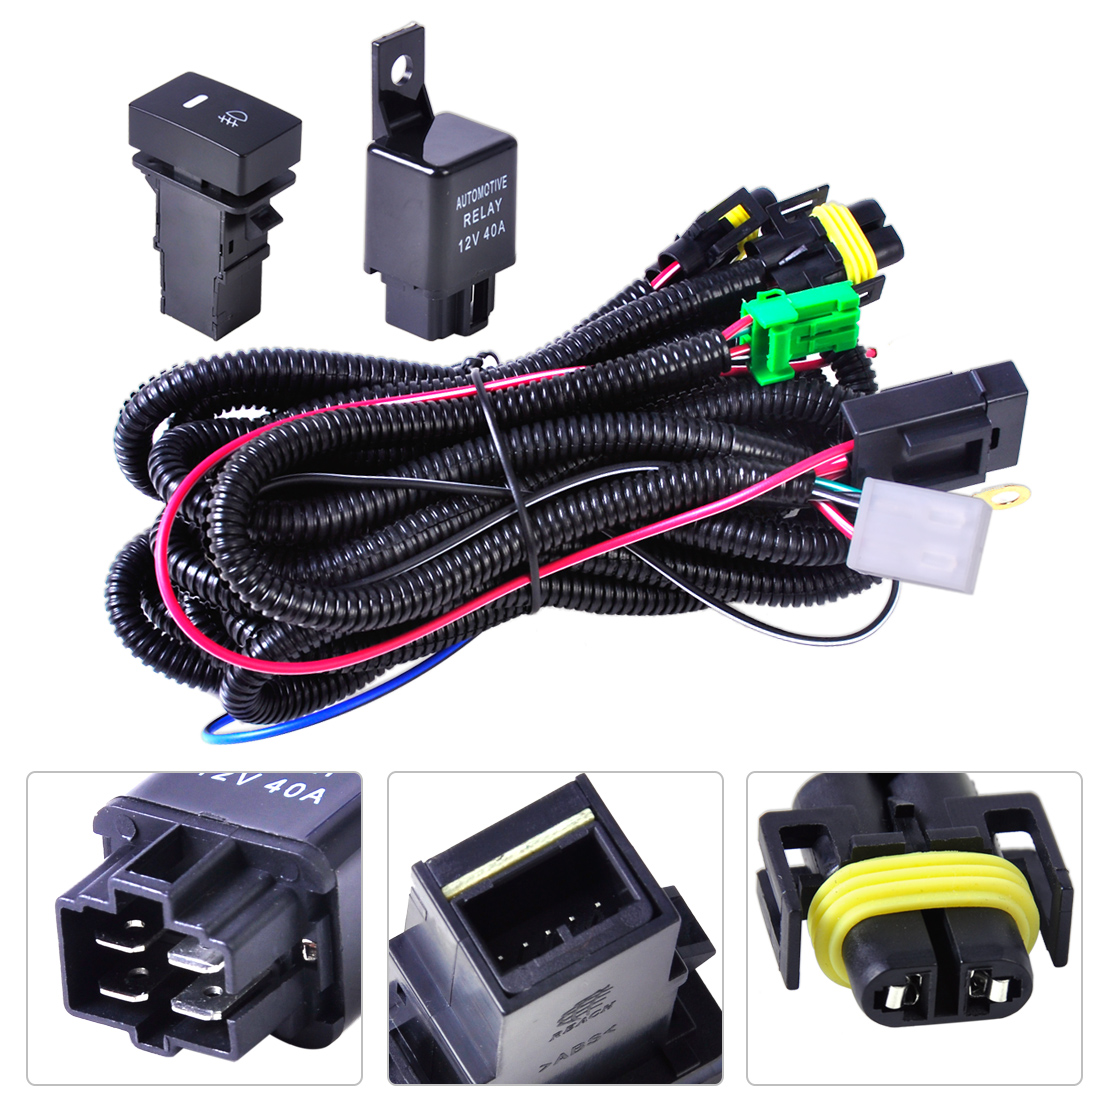 hight resolution of dwcx wiring harness sockets wire switch for h11 fog light 2005 silverado radio wiring harness wiring